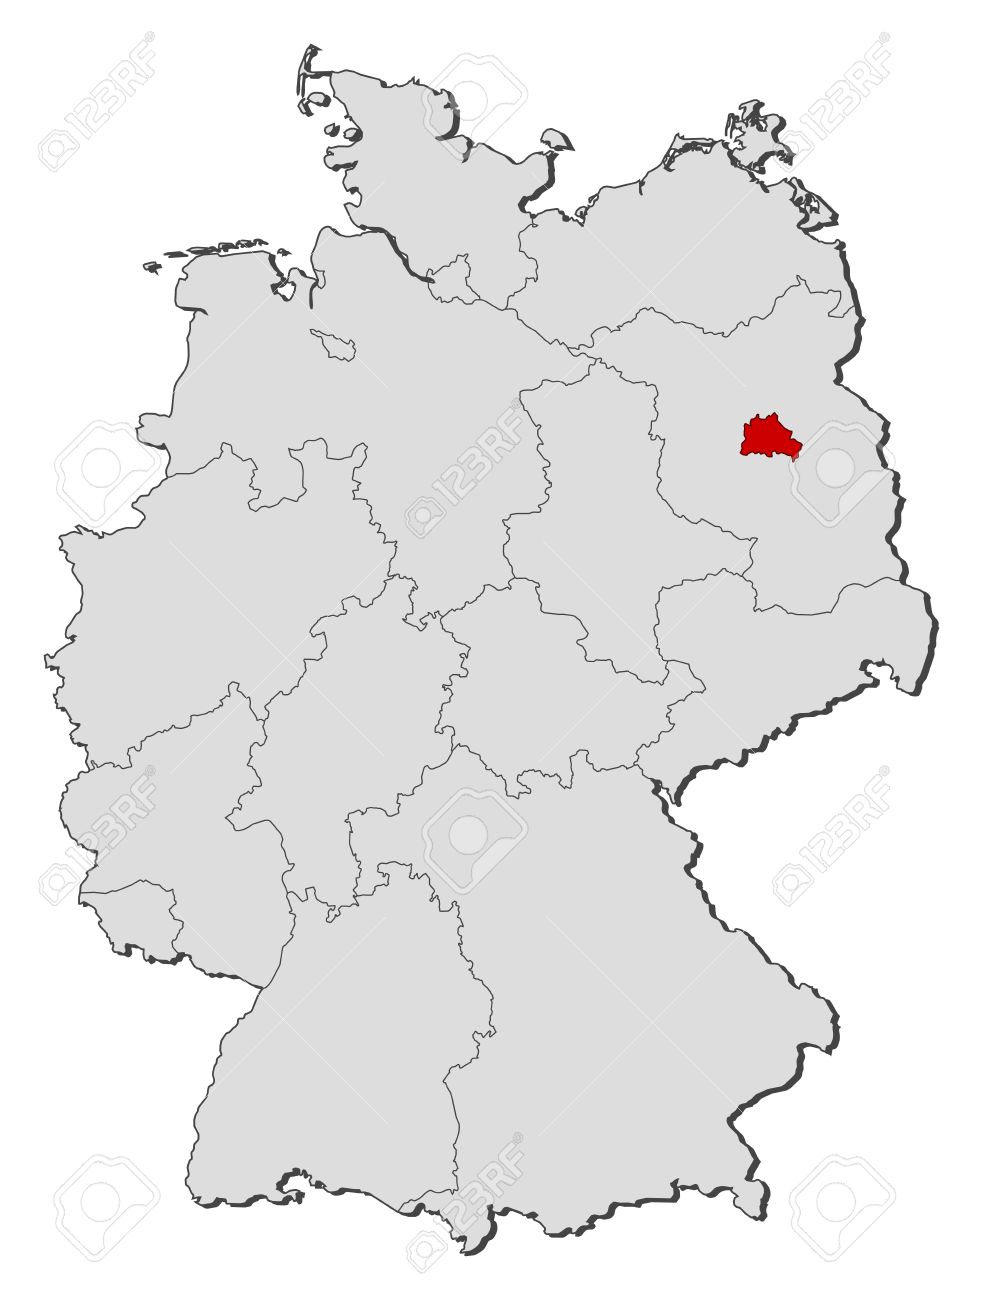 Political Map Of Germany With The Several States Where Berlin - Berlin map in germany